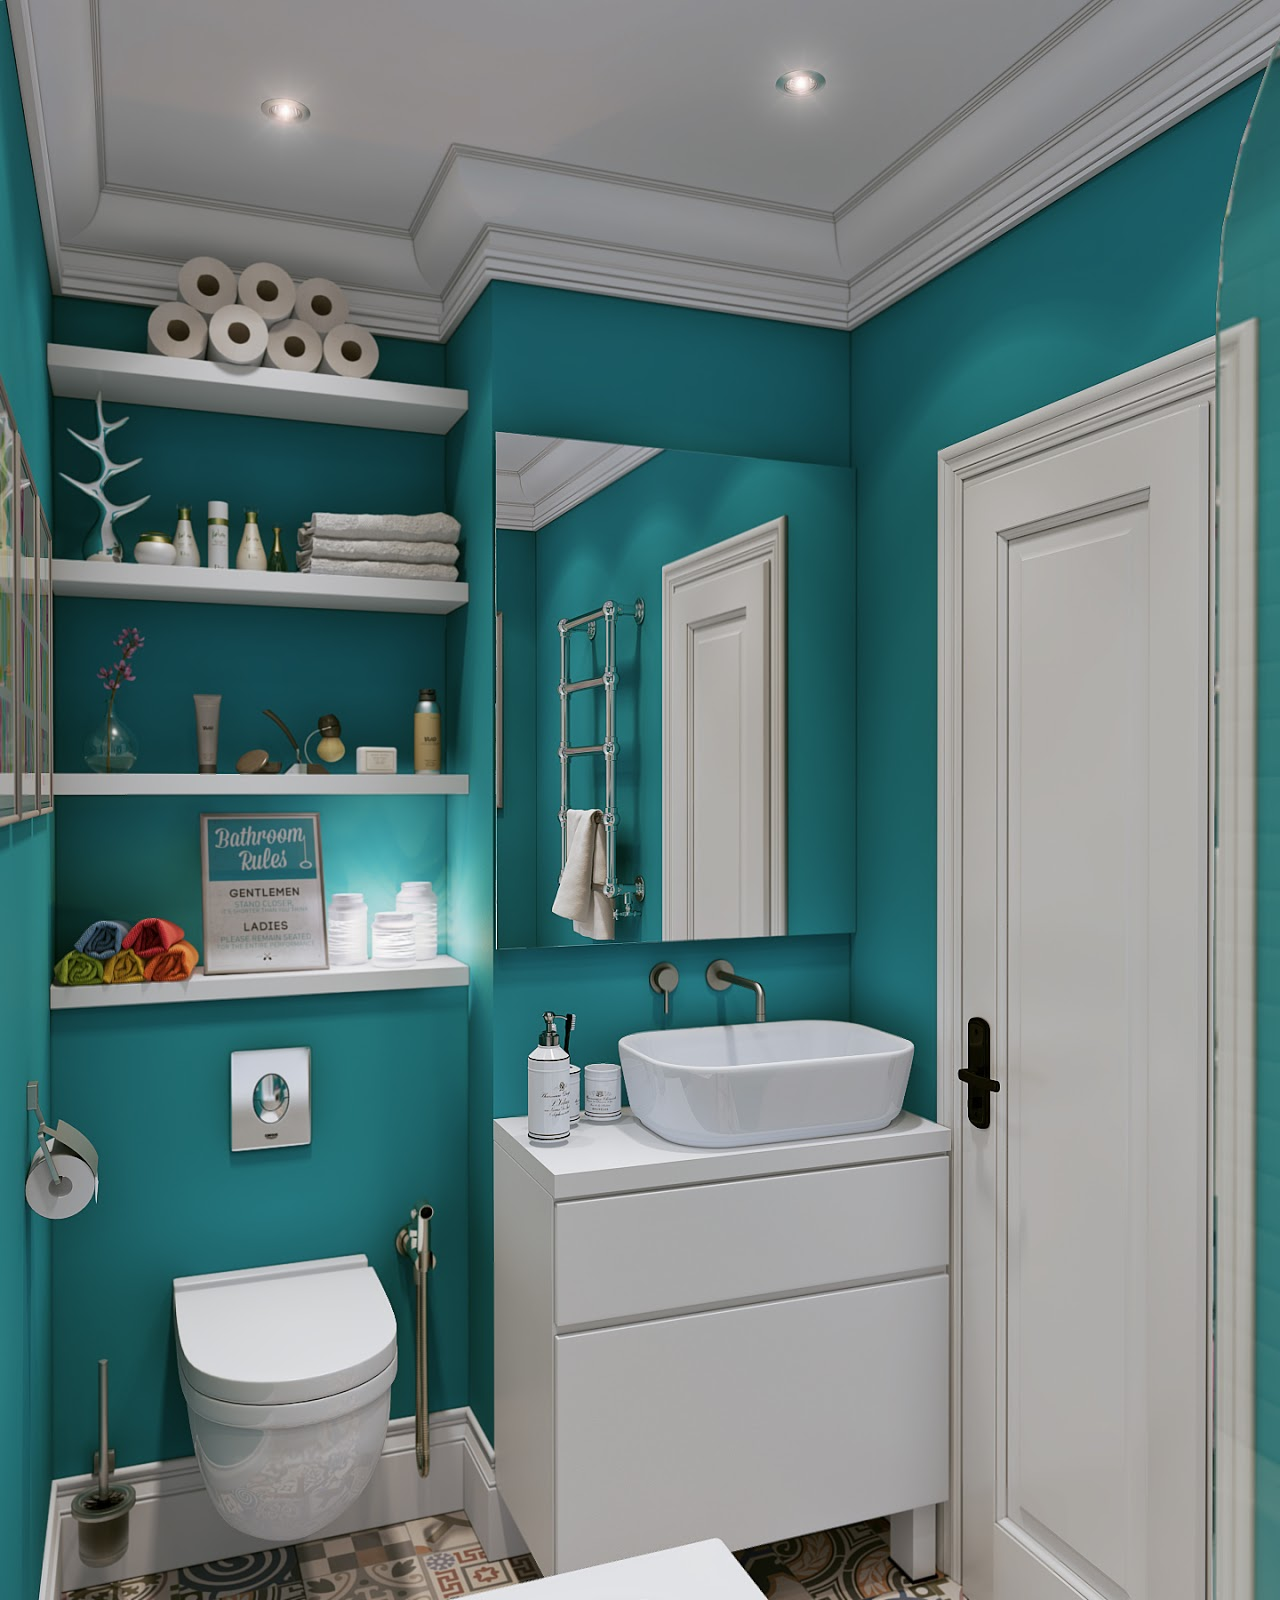 Bathroom designs for small spaces blue - Bathroom Designs For Small Spaces Blue 19